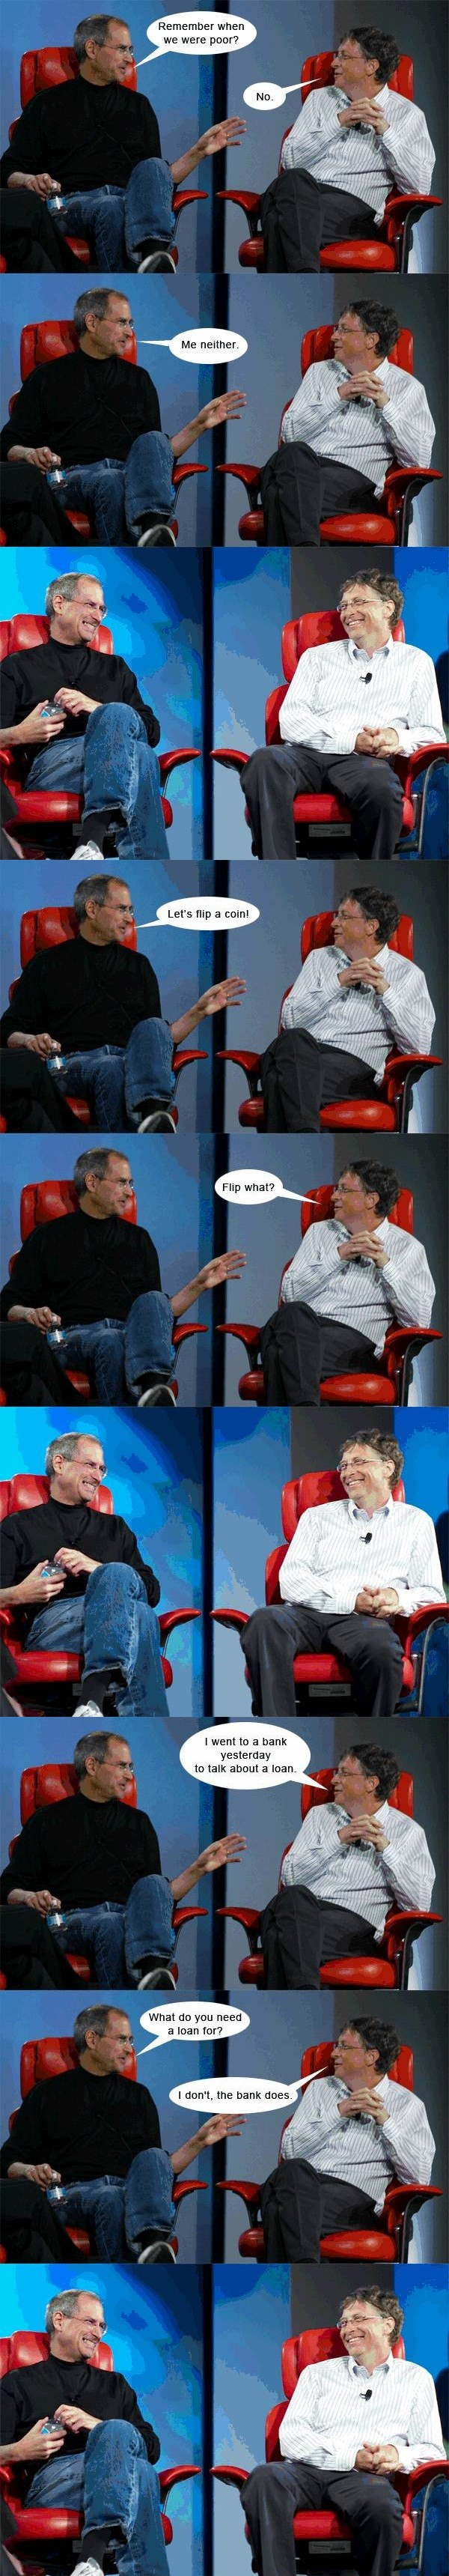 Steve Jobs and Bill Gates finally agree.